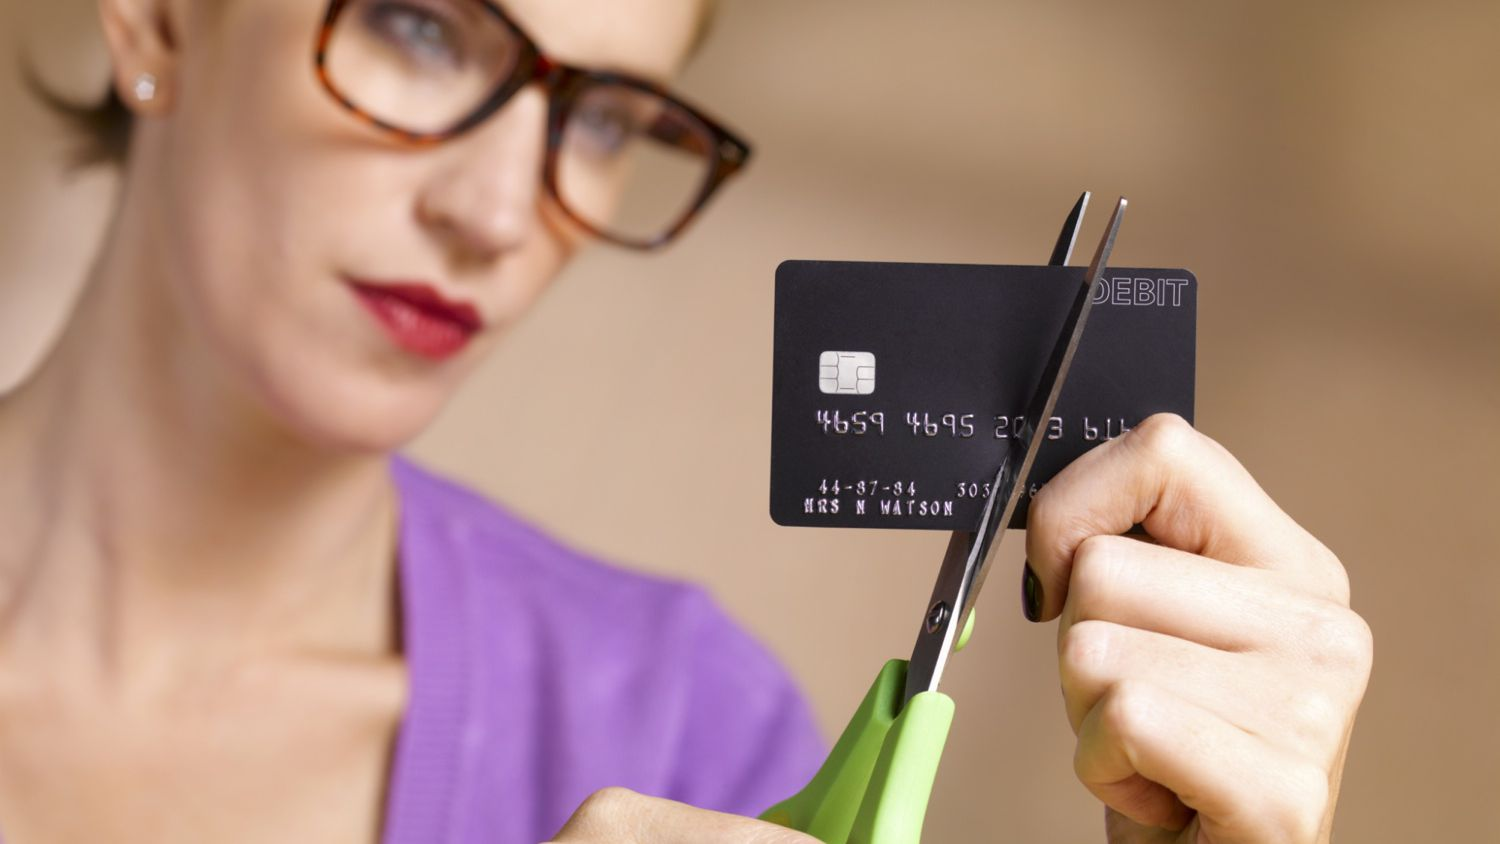 Stick to Cash and Stop Relying on Credit Cards